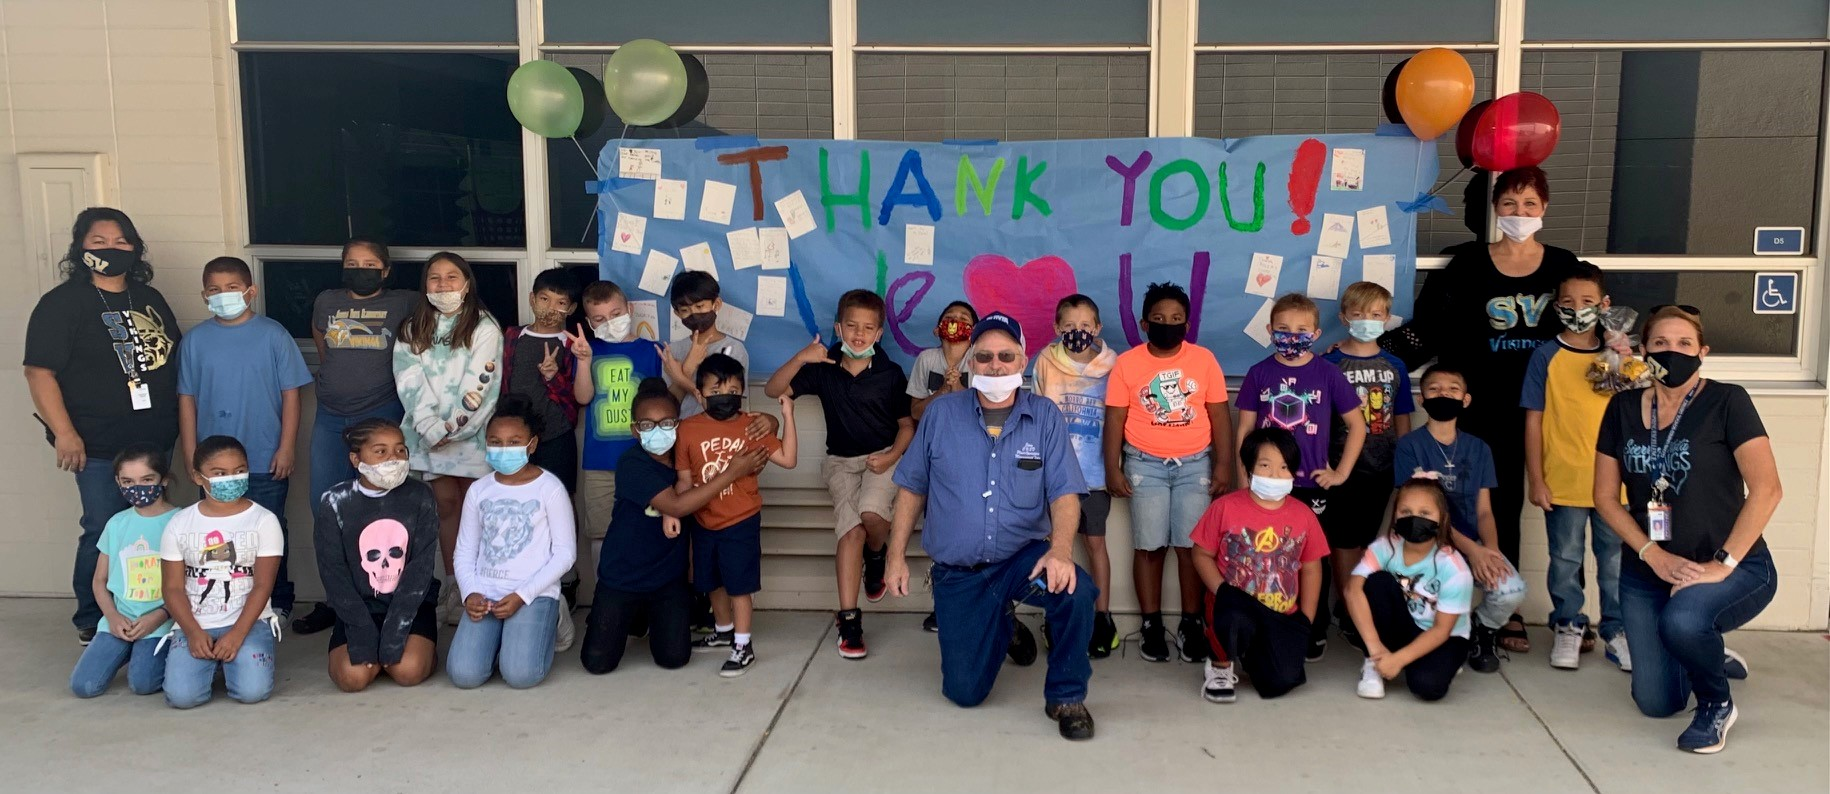 Students, teachers, principal pose with custodian to say thank-you